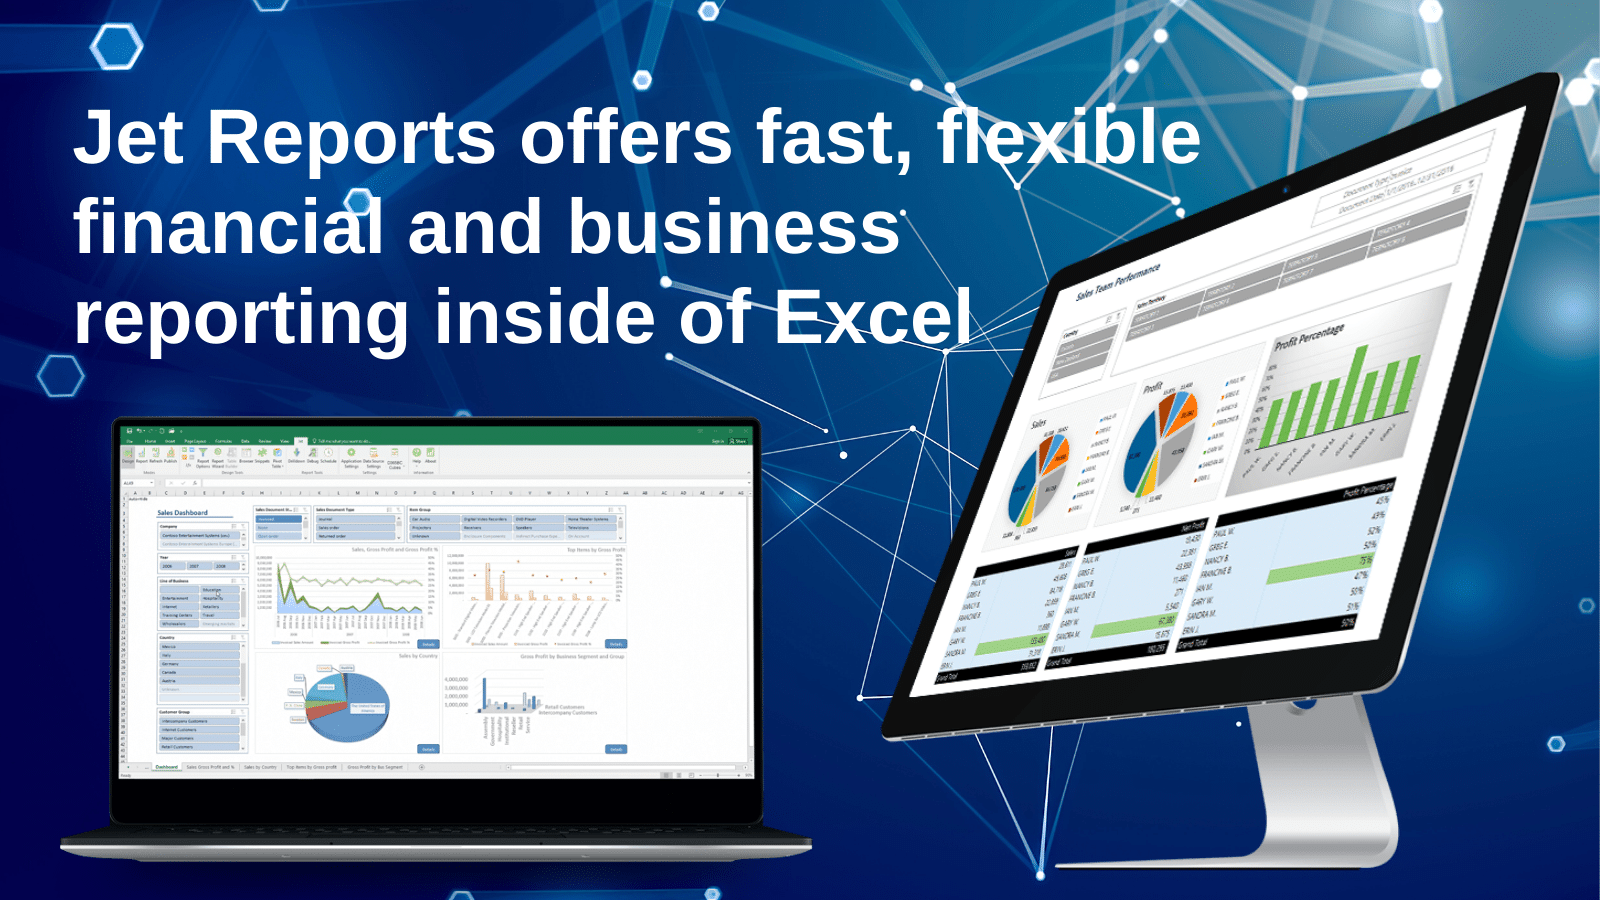 Jet Reports offers fast, flexible financial and business reporting inside of Excel